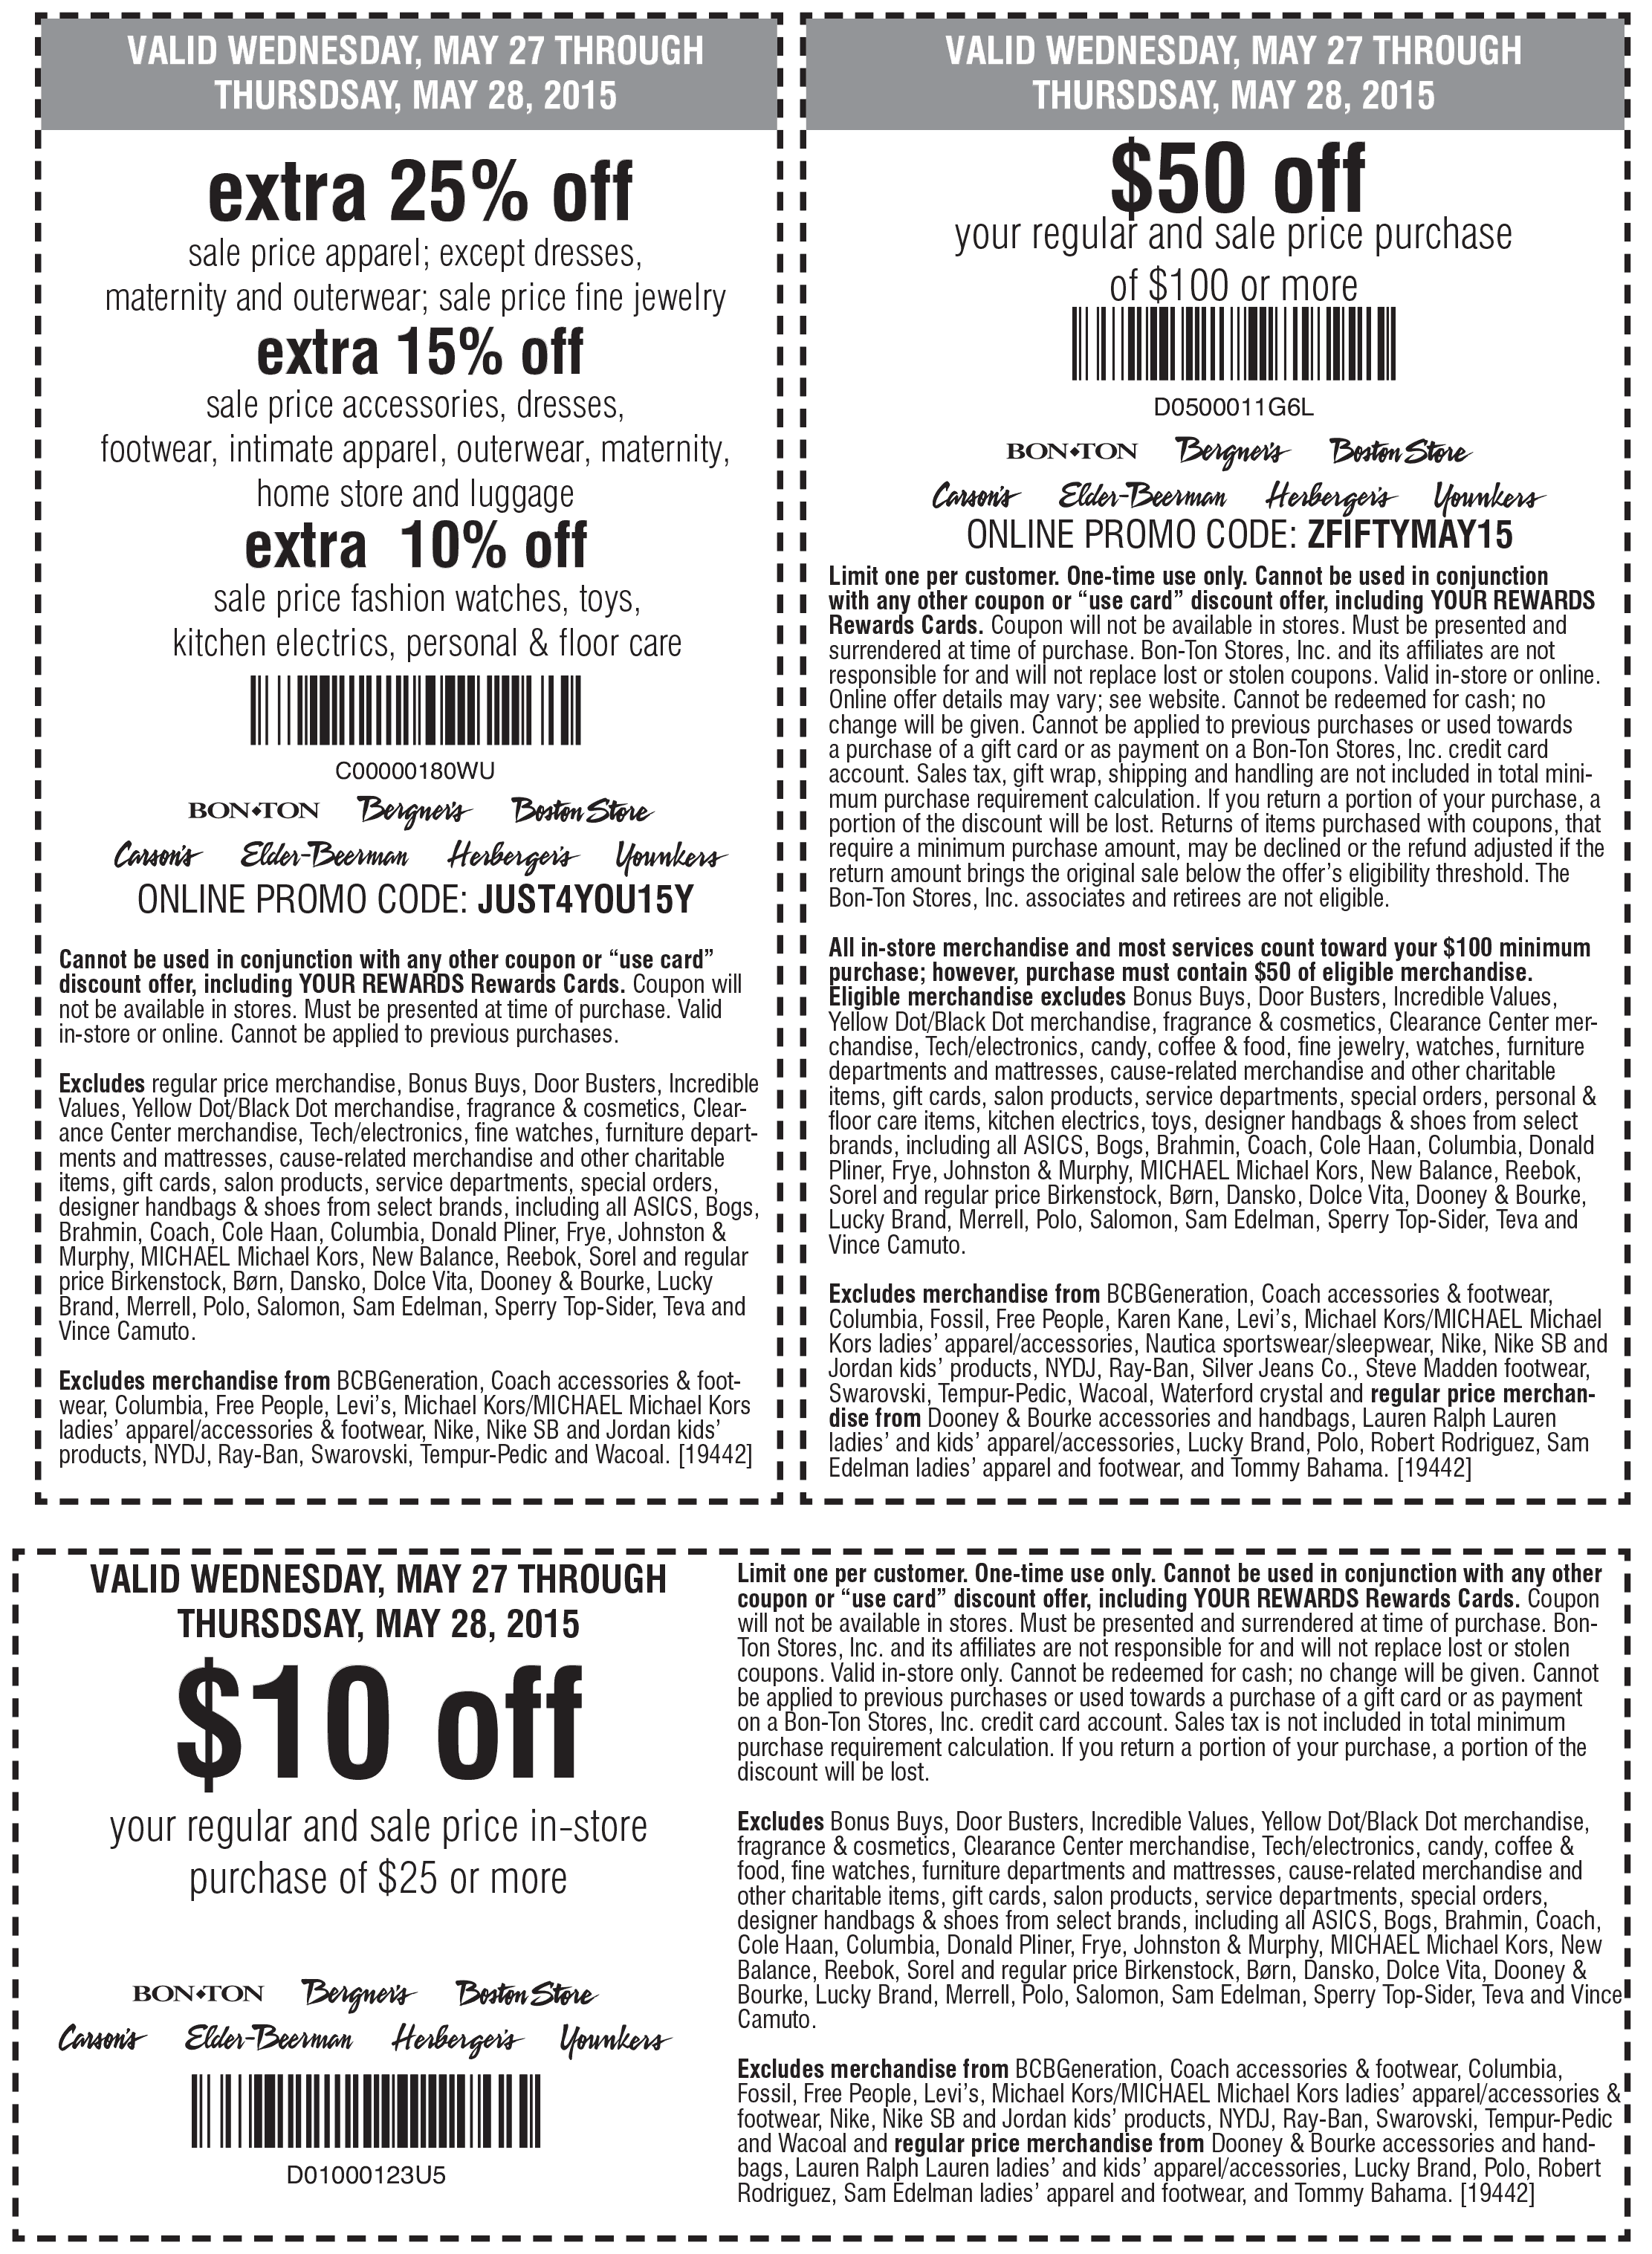 Carsons Coupon November 2017 $50 off $100 & more at Carsons, Bon Ton & sister stores, or online via promo code ZFIFTYMAY15